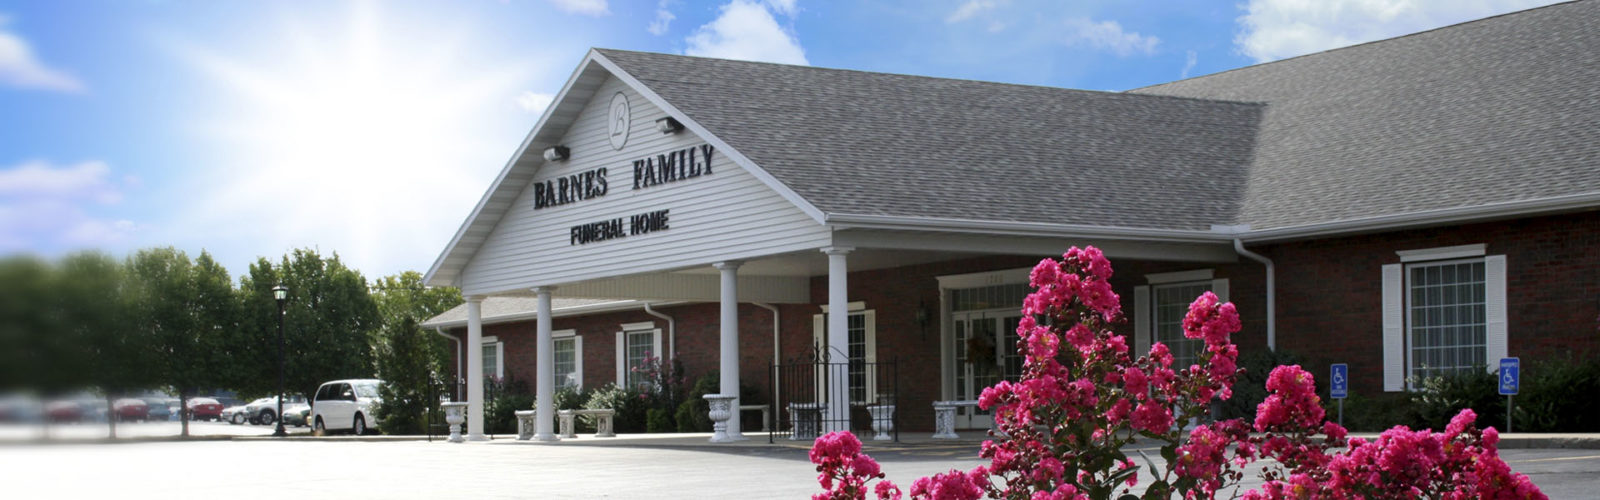 Barnes Family Funeral Home - Home-Owned Slider Background